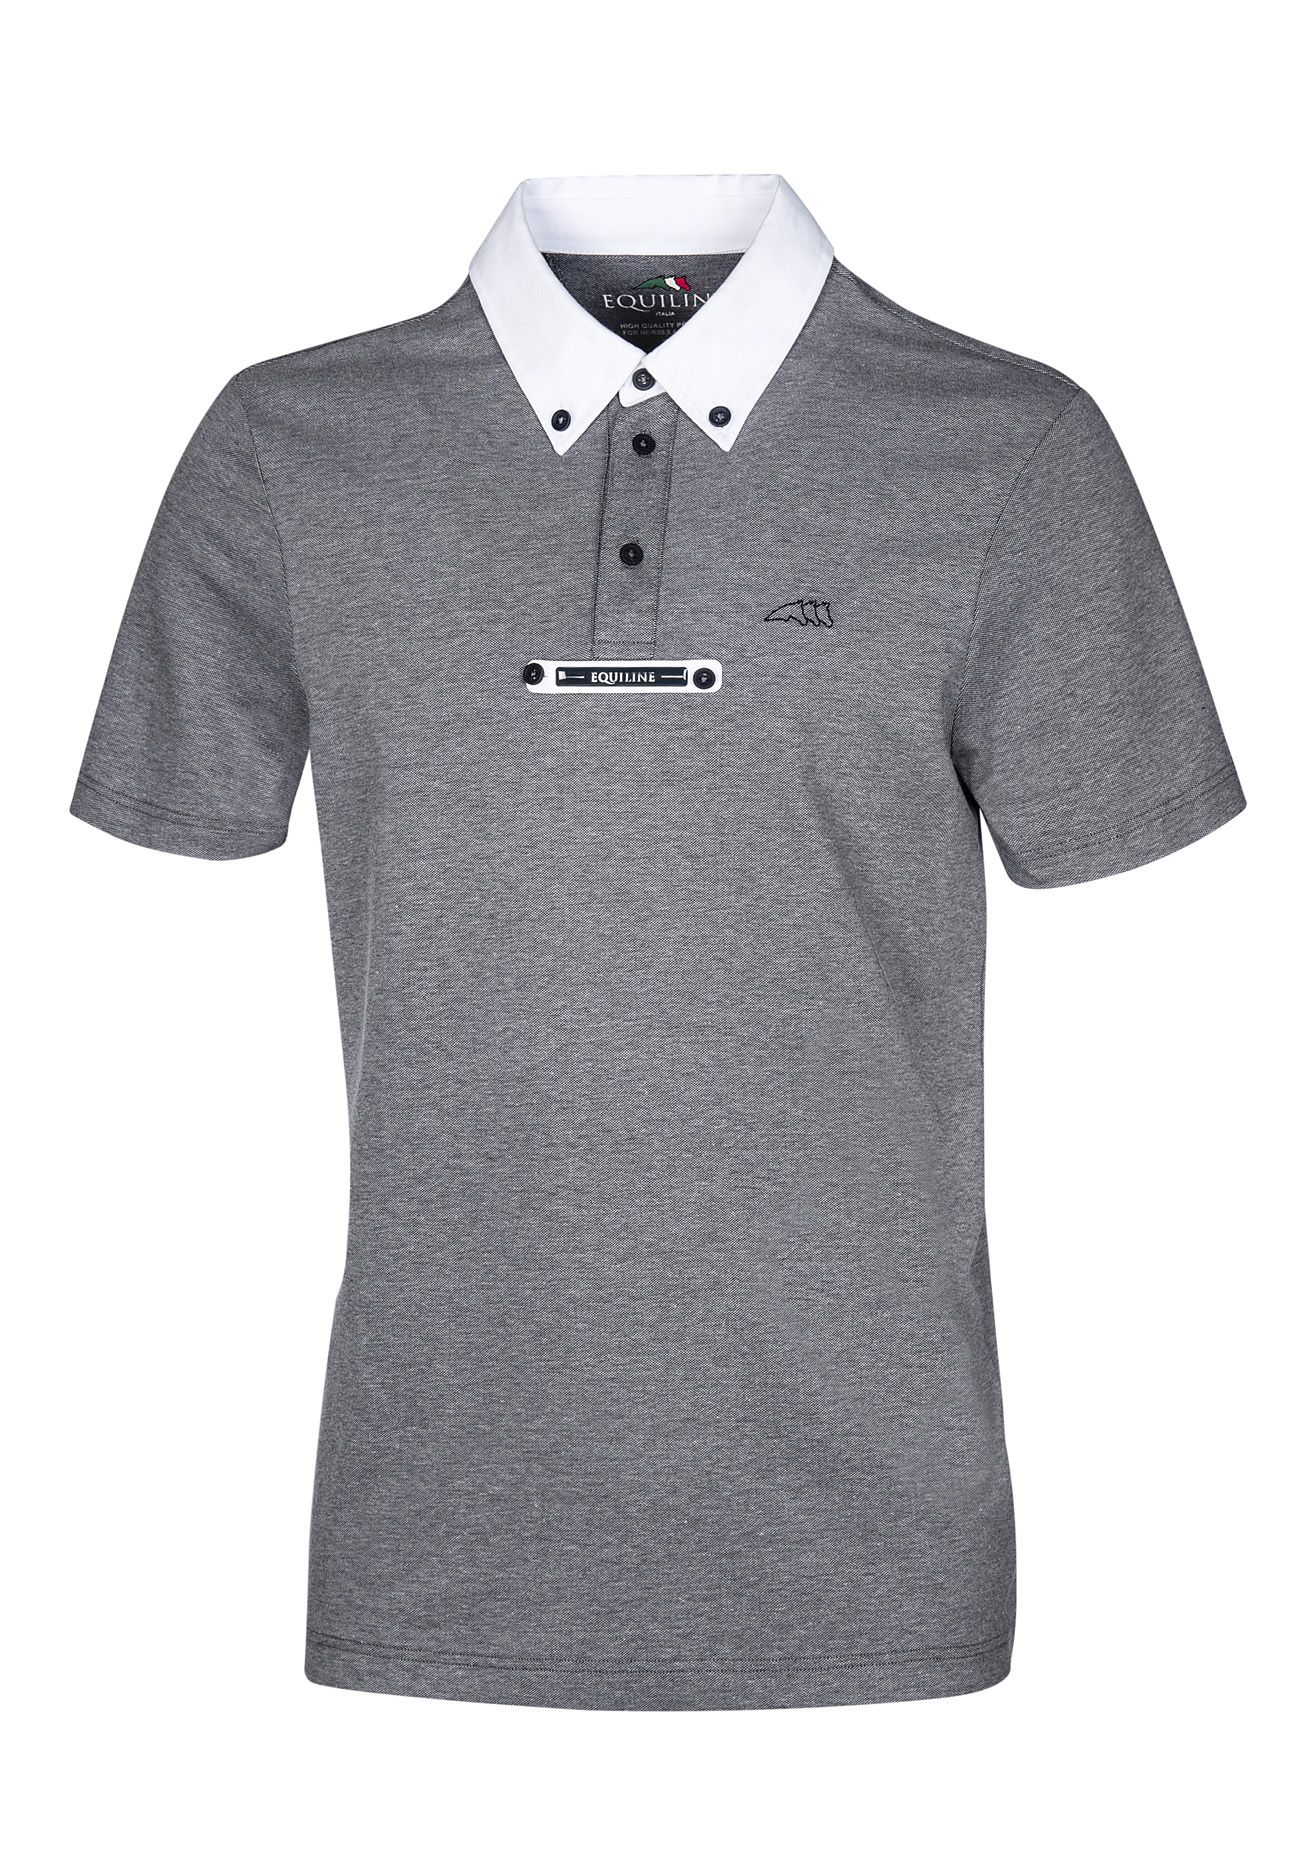 078d2a55a Man short slave competition polo. Basic poloshirt made of breathable and  stretch solid color piquet